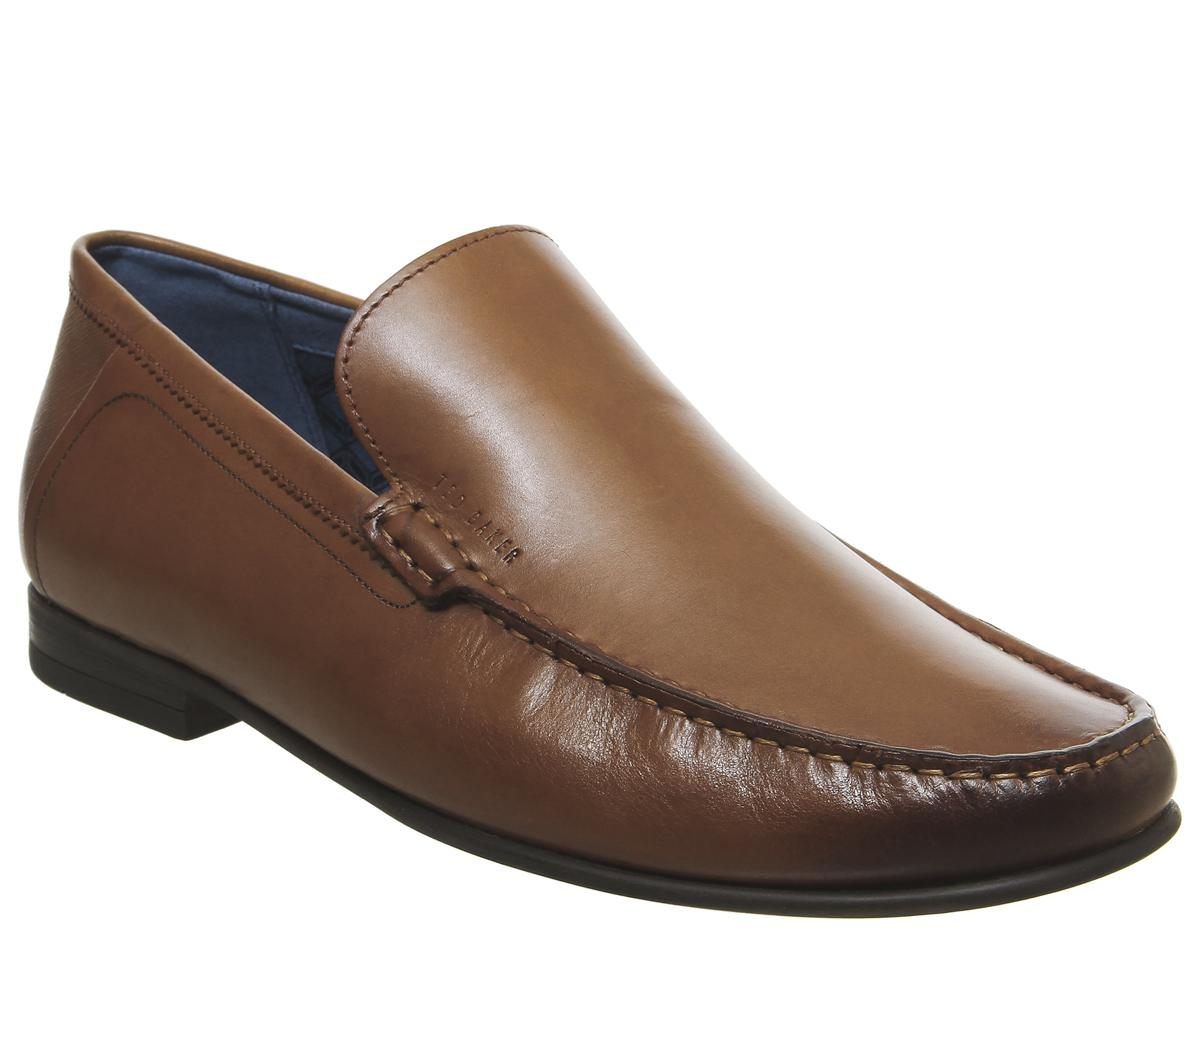 Ted Baker Lassil Loafers Tan - Smart